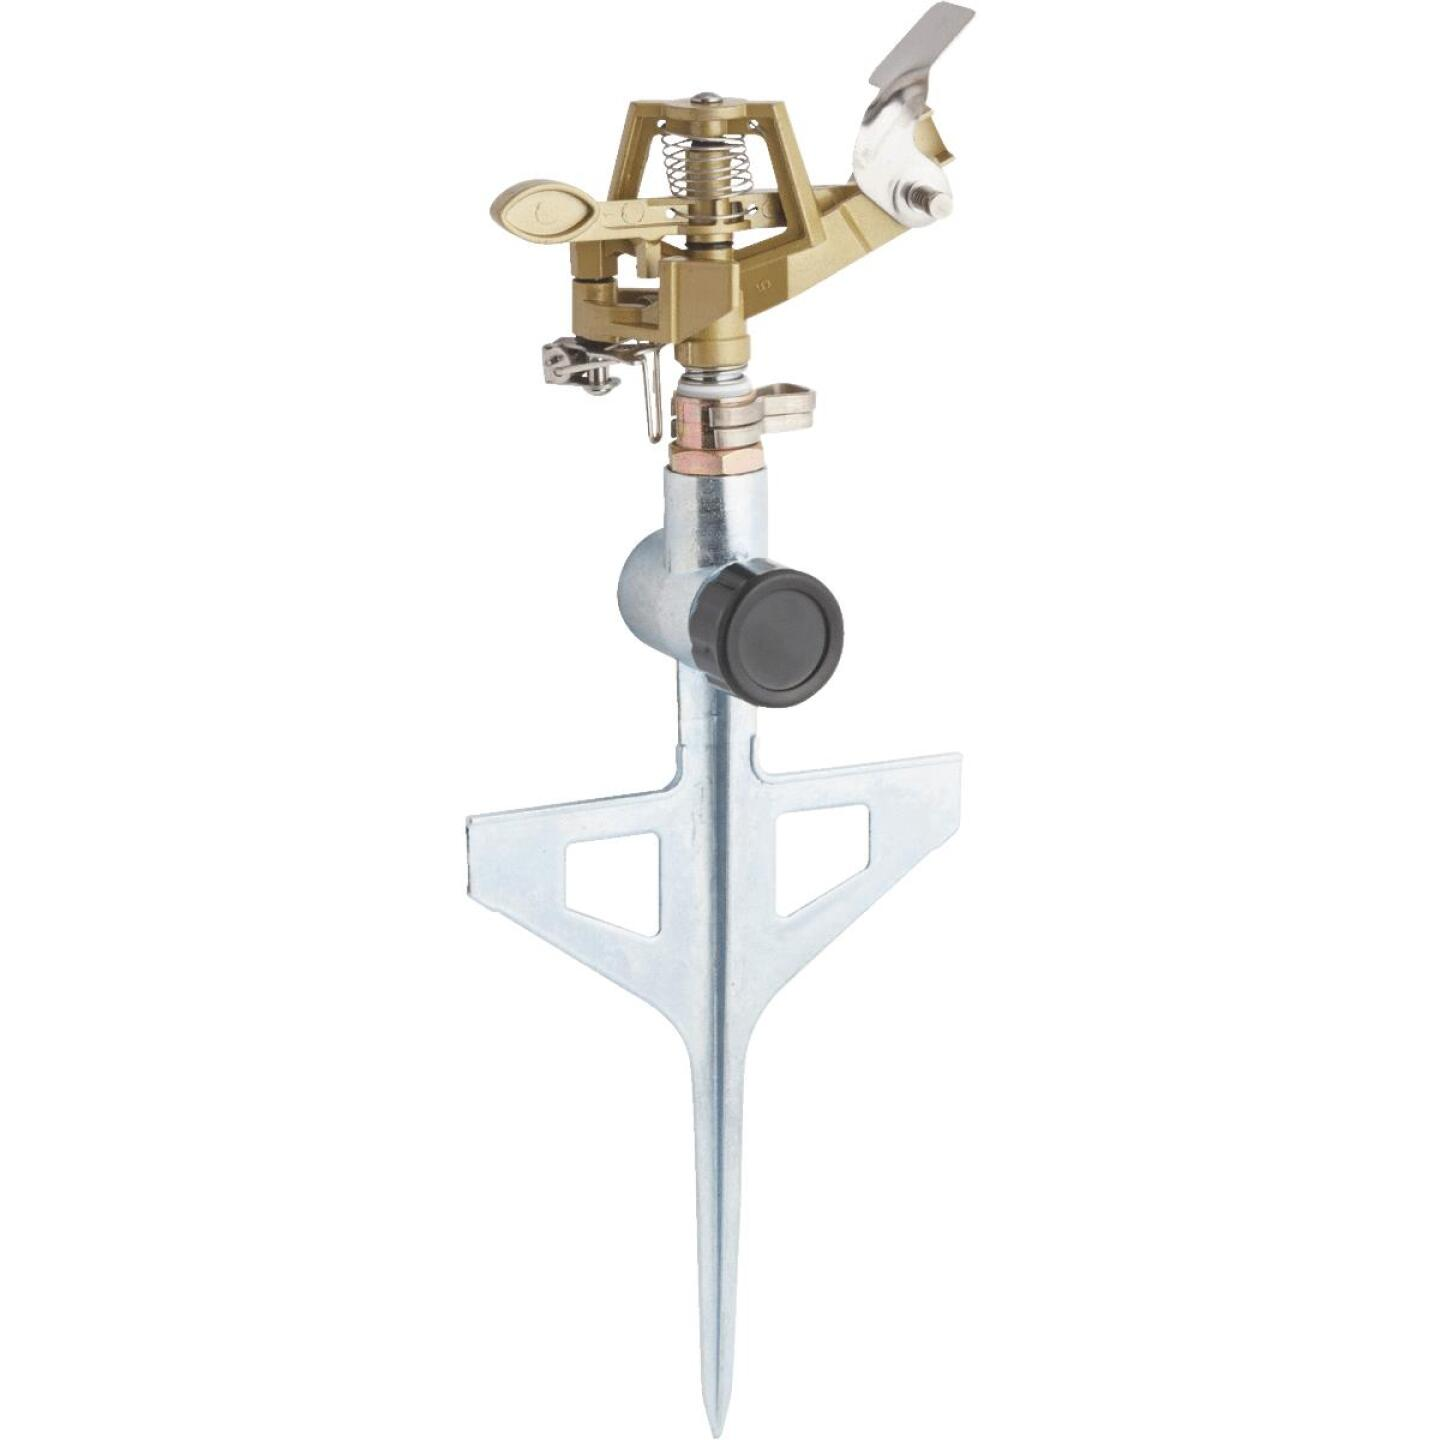 Best Garden Metal 5600 Sq. Ft. T-Spike Impulse Sprinkler Image 1